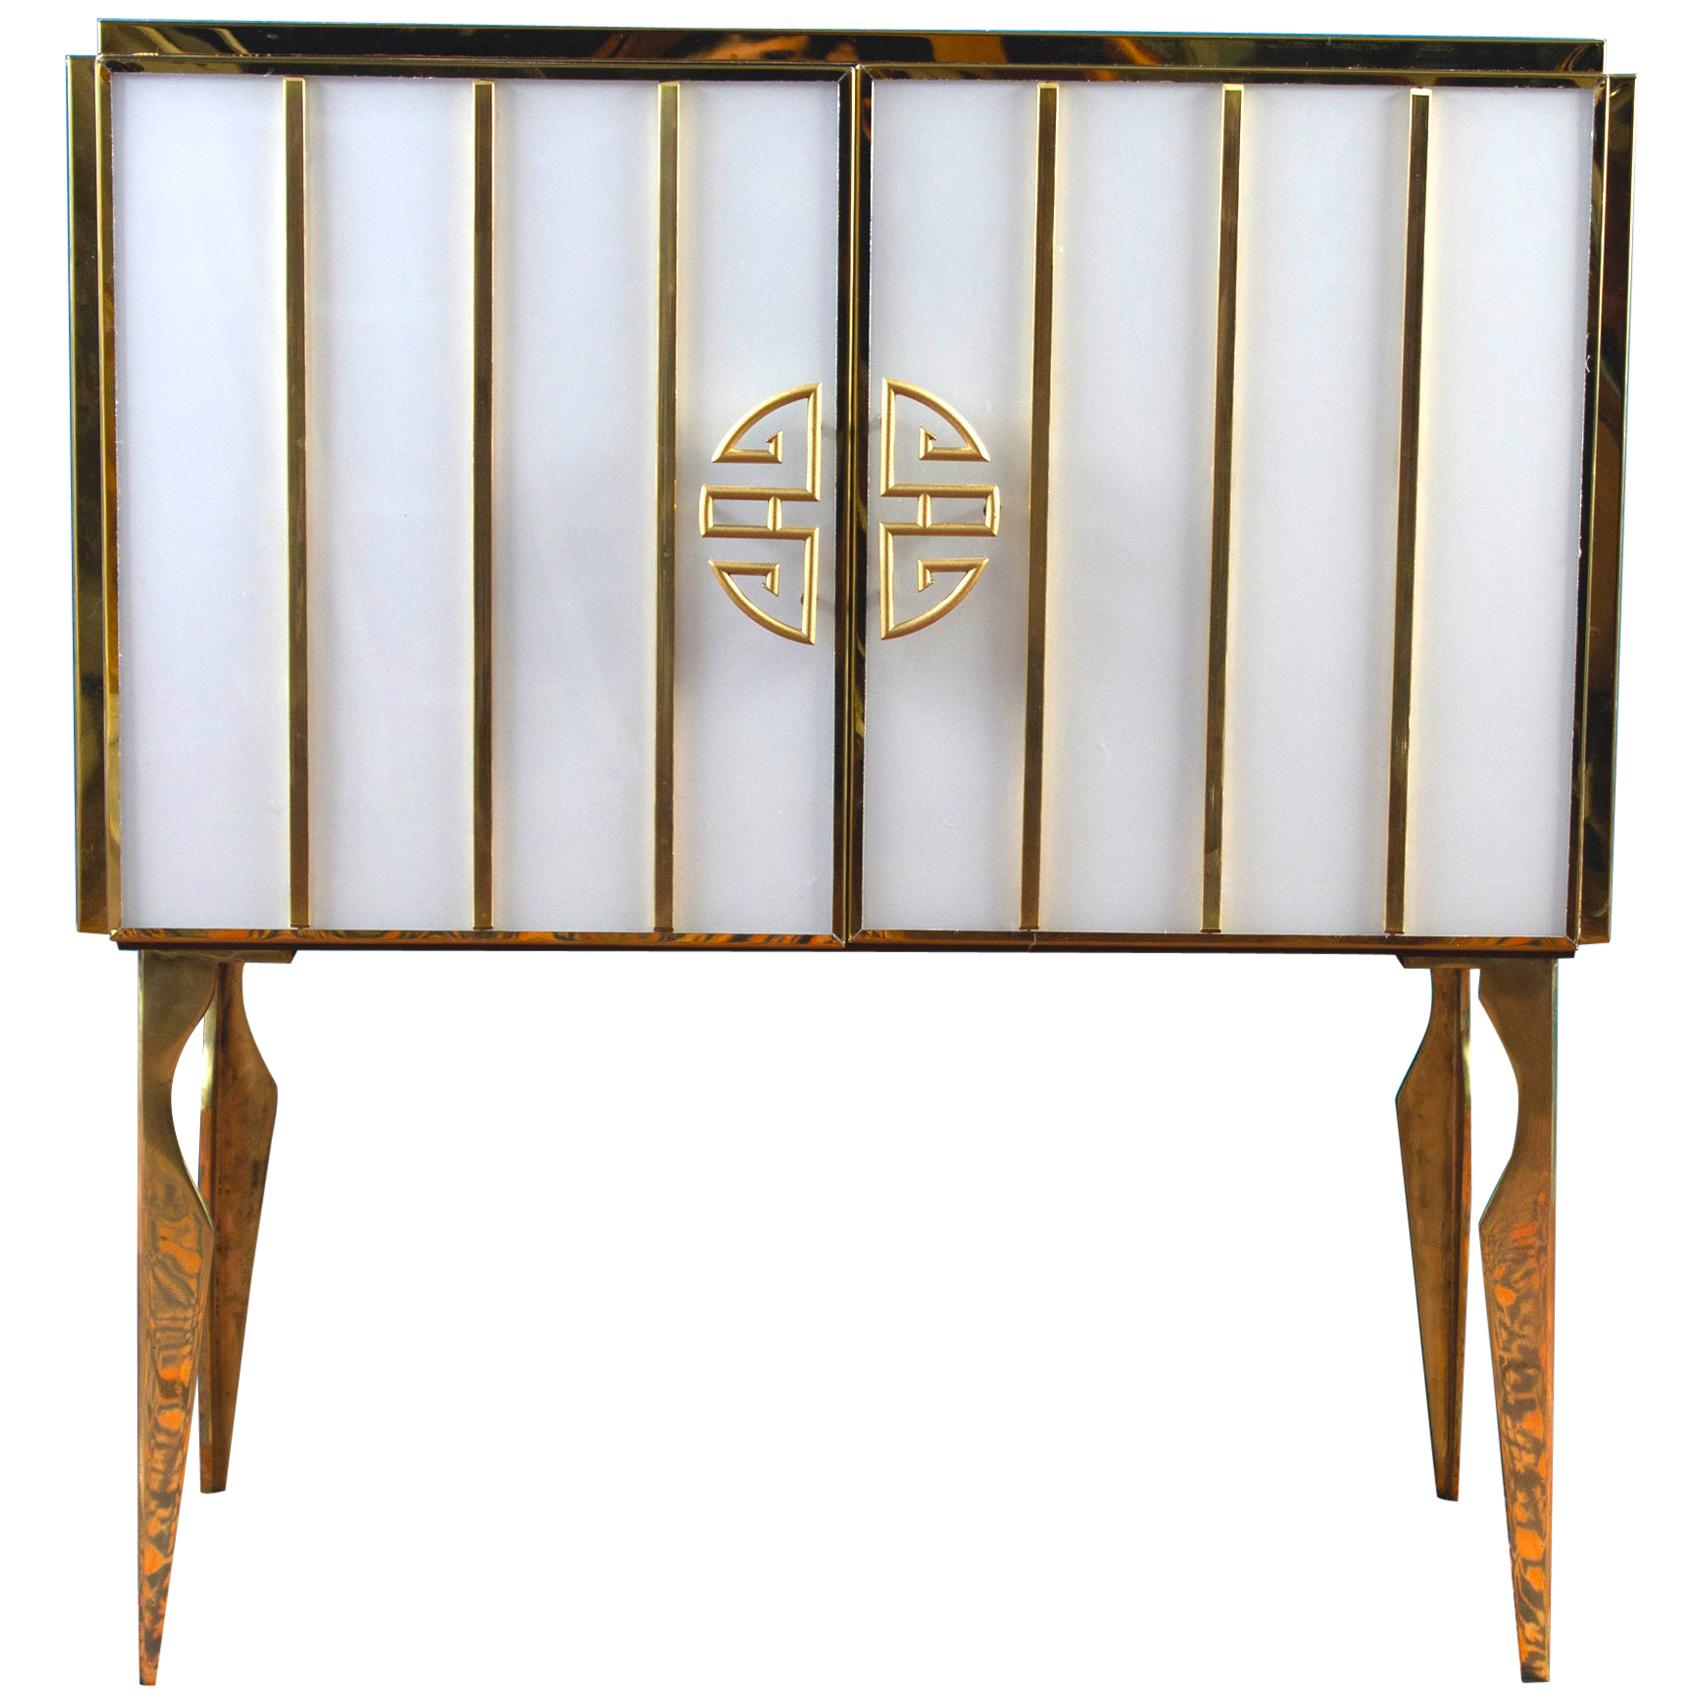 Midcentury Style Brass and Colored Murano Glass Bar Cabinet, 2020